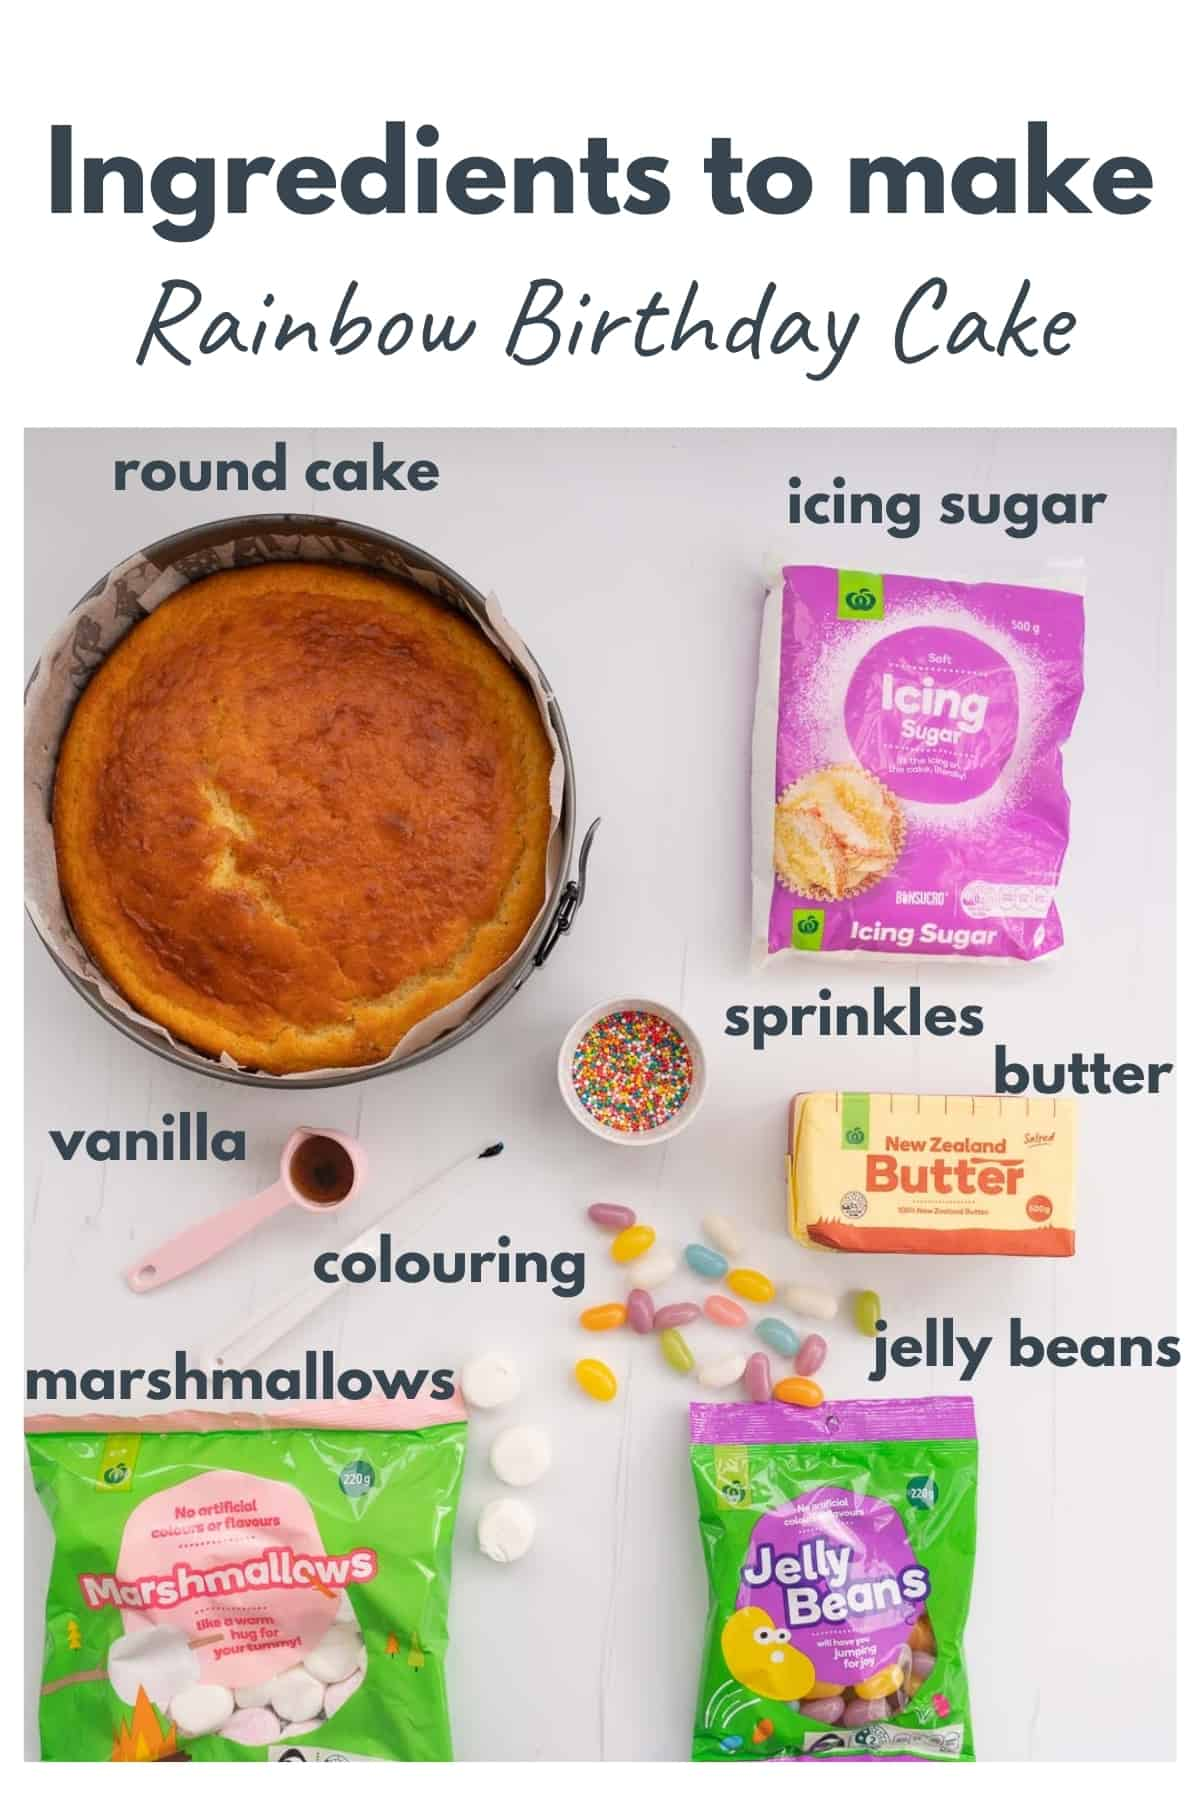 Ingredients to make a rainbow birthday cake laid out on a bench top with text overlay.